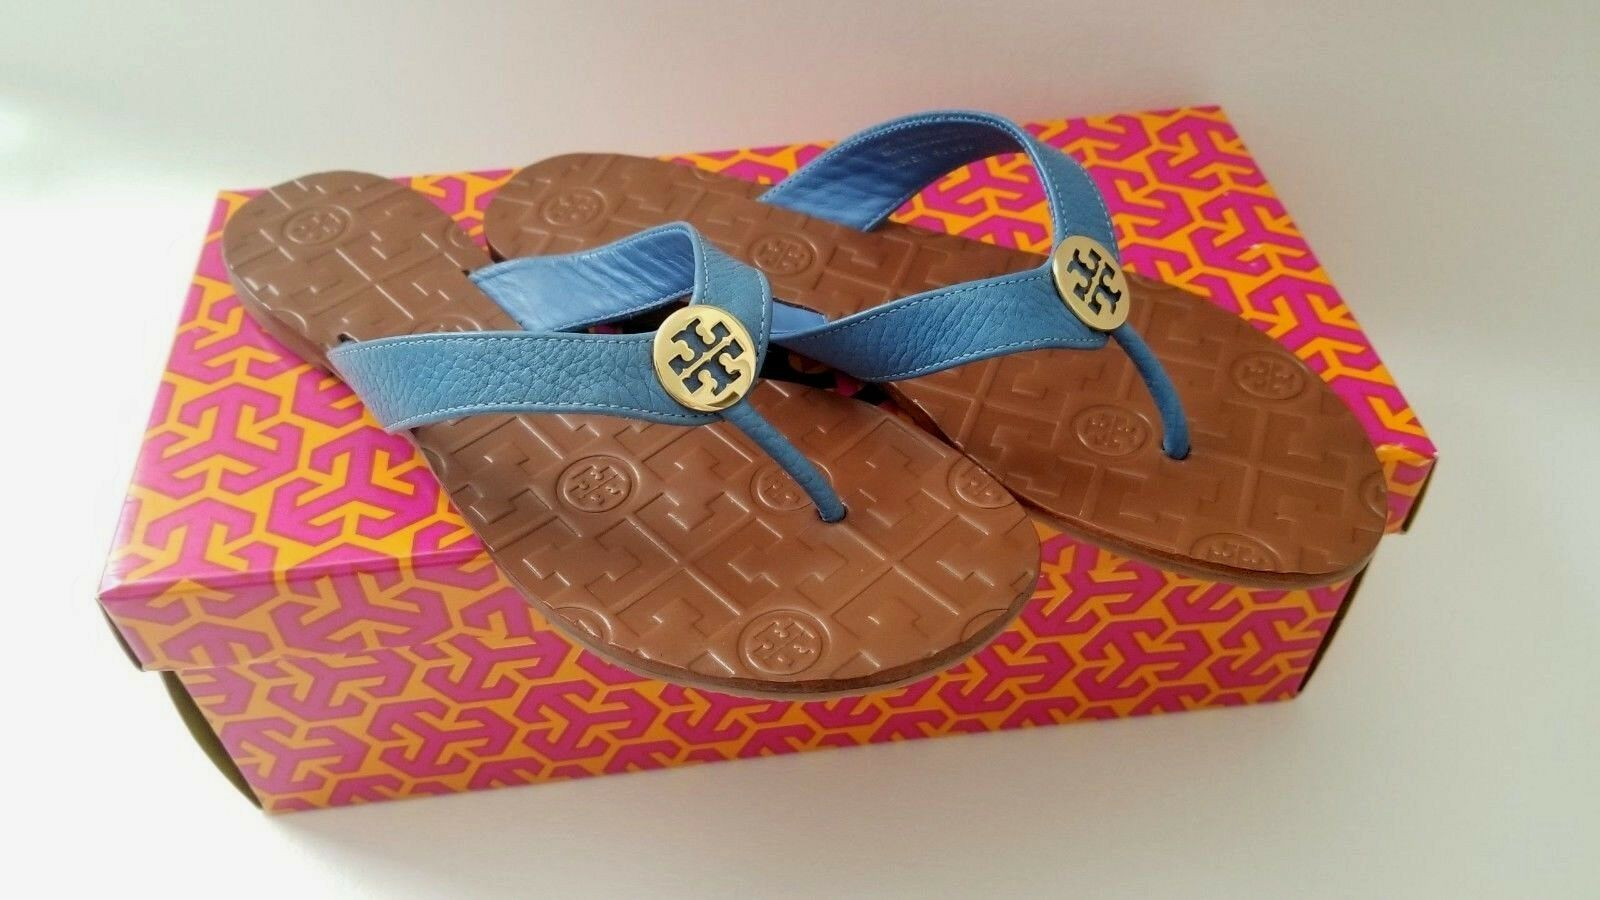 NEW in BOX Tory Burch Leather Thora Flat Thong Sandals Sandals Sandals gold bluee summer US 6 28605e